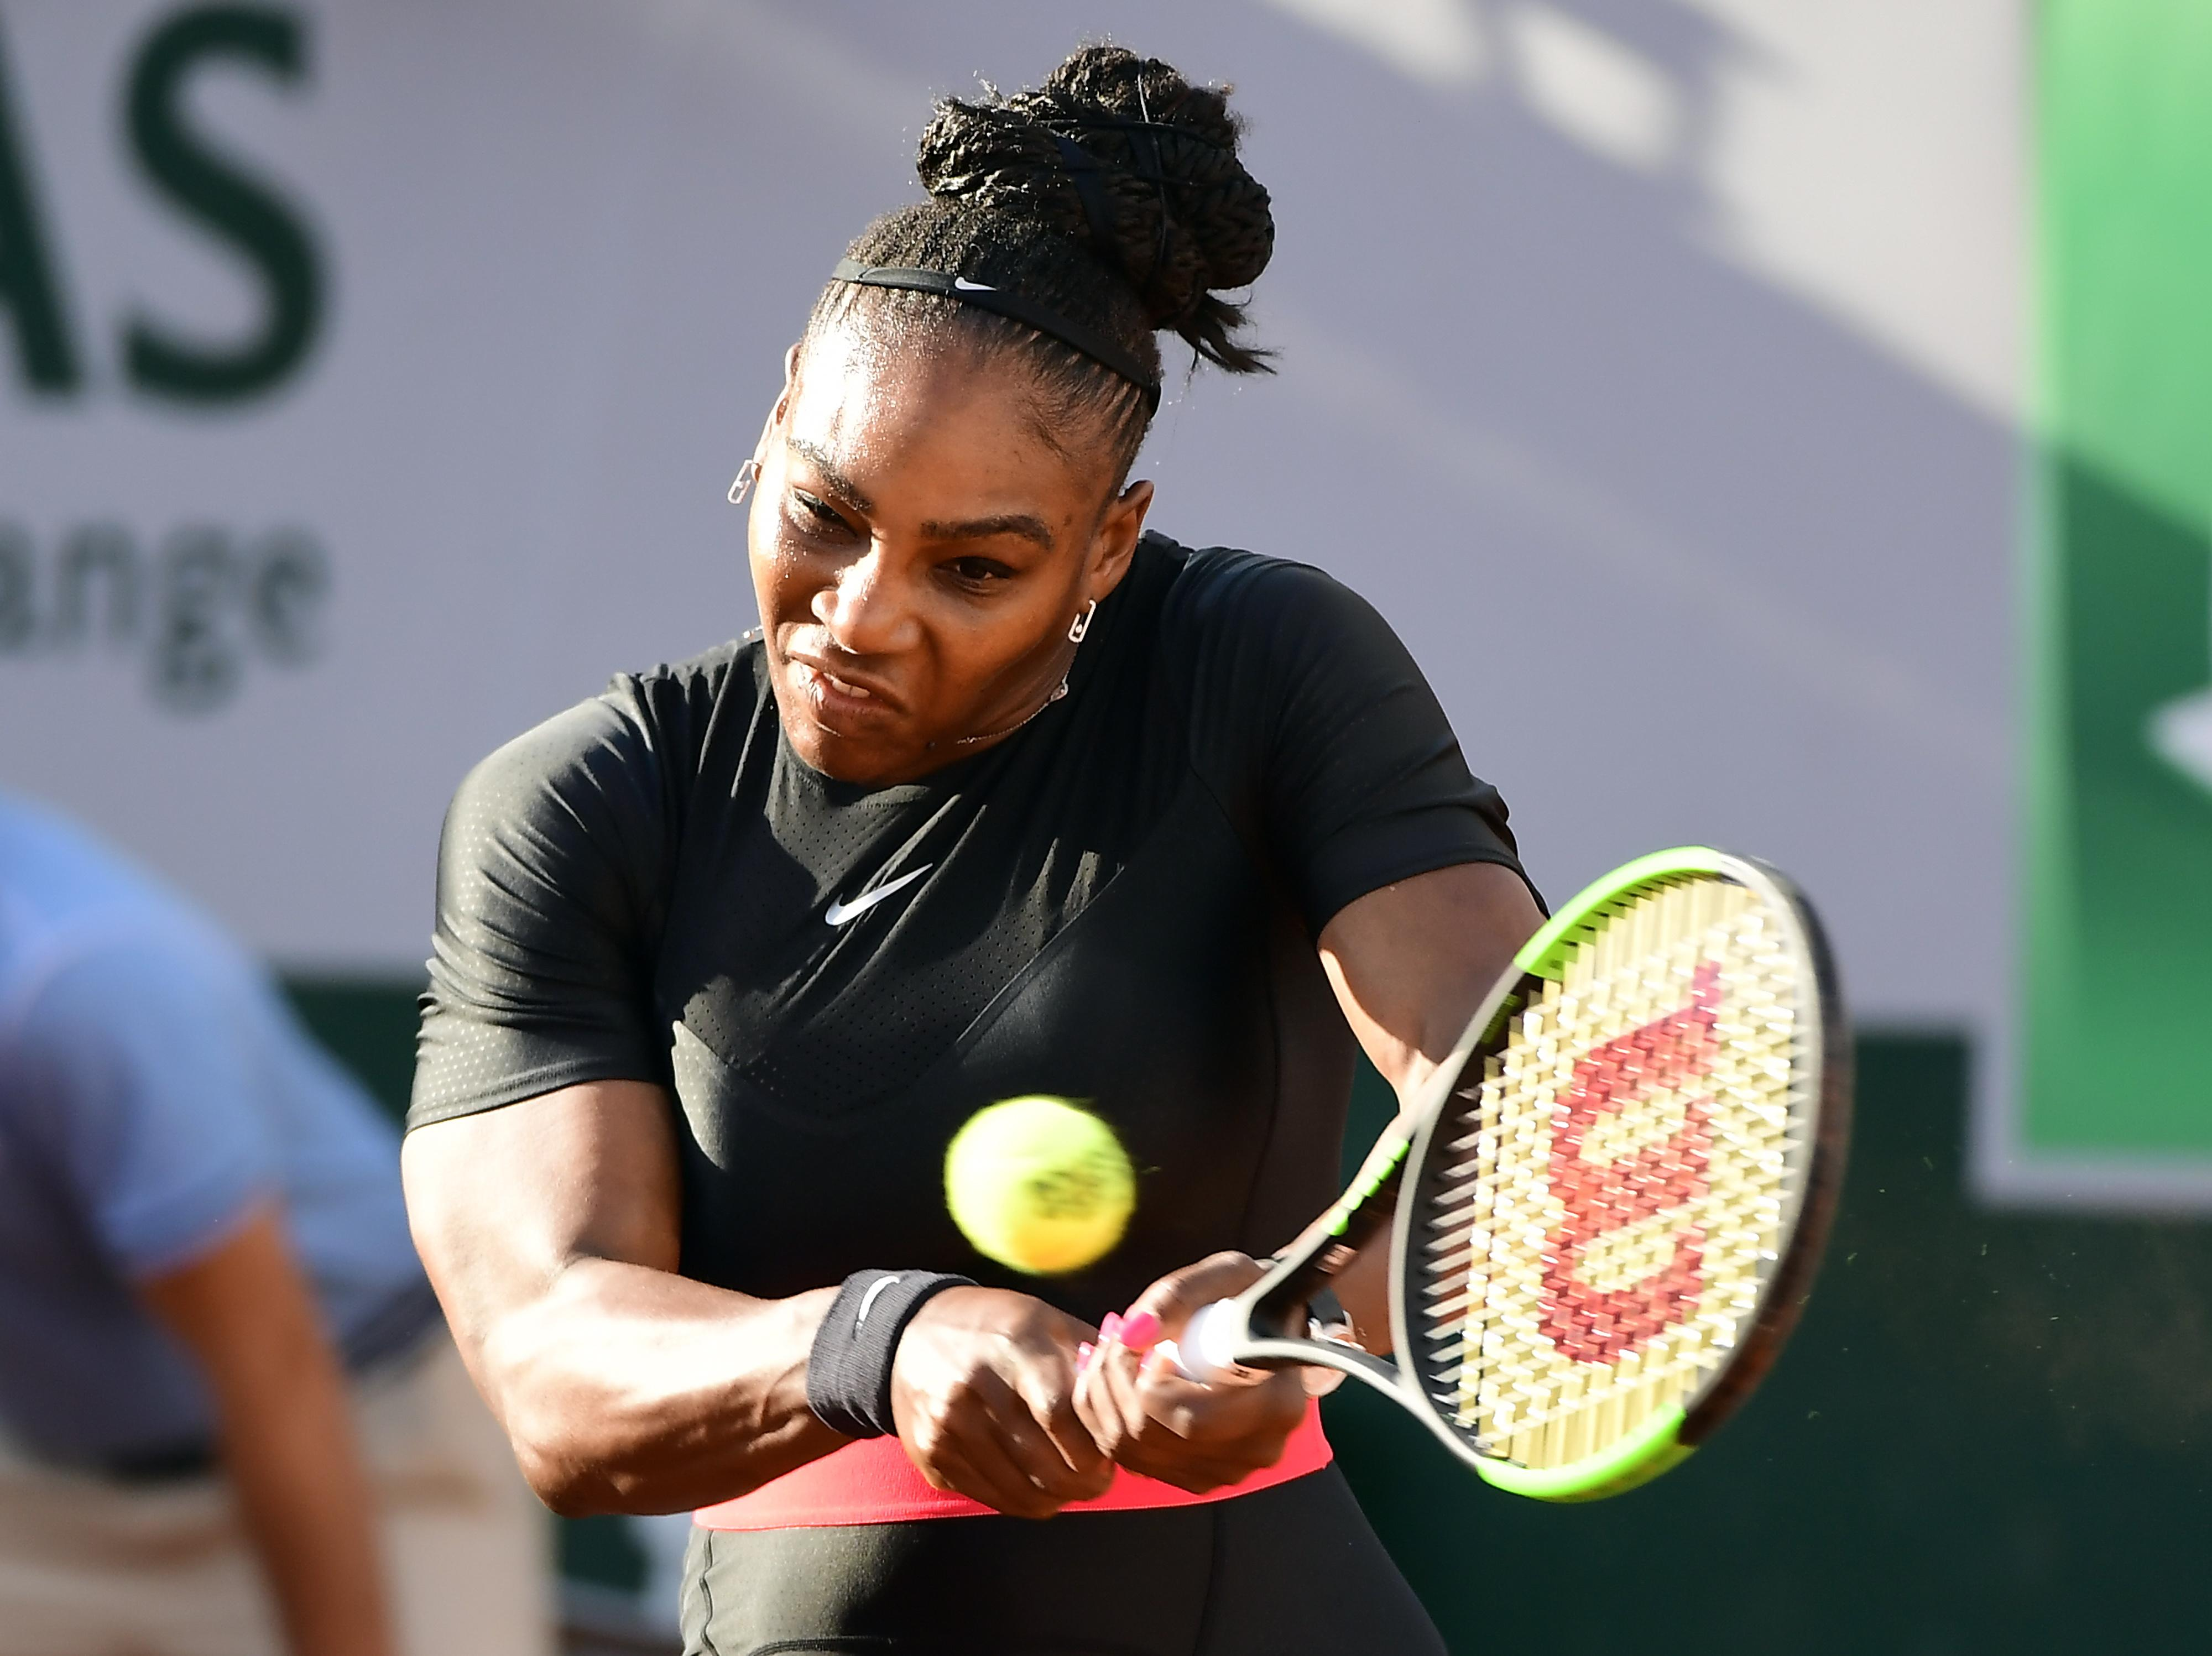 Serena Williams won in straight sets against Julia Goerges